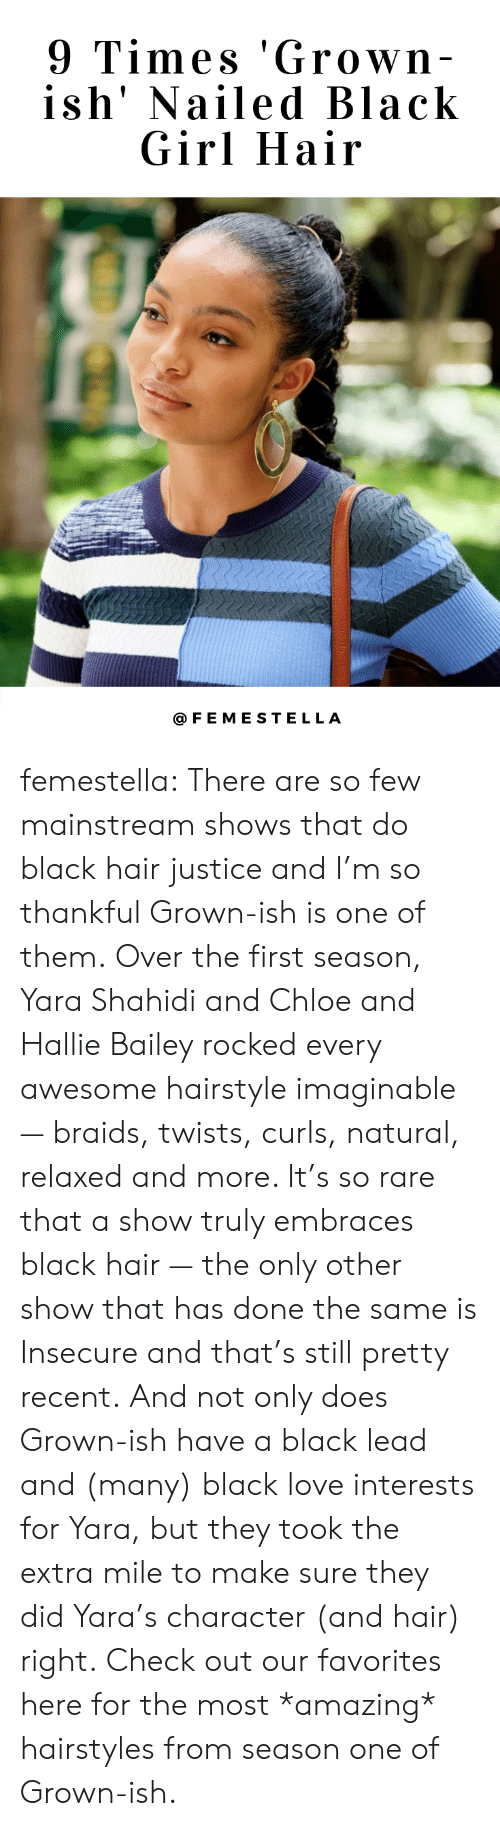 Braids, Love, and Target: 9 Times 'Grown  ish' Nailed Black  Girl Hair  @FEMESTELLA femestella: There are so few mainstream shows that do black hair justice and I'm so thankful Grown-ish is one of them. Over the first season, Yara Shahidi and Chloe and Hallie Bailey rocked every awesome hairstyle imaginable — braids, twists, curls, natural, relaxed and more. It's so rare that a show truly embraces black hair — the only other show that has done the same is Insecure and that's still pretty recent. And not only does Grown-ish have a black lead and (many) black love interests for Yara, but they took the extra mile to make sure they did Yara's character (and hair) right. Check out our favorites here for the most *amazing* hairstyles from season one of Grown-ish.